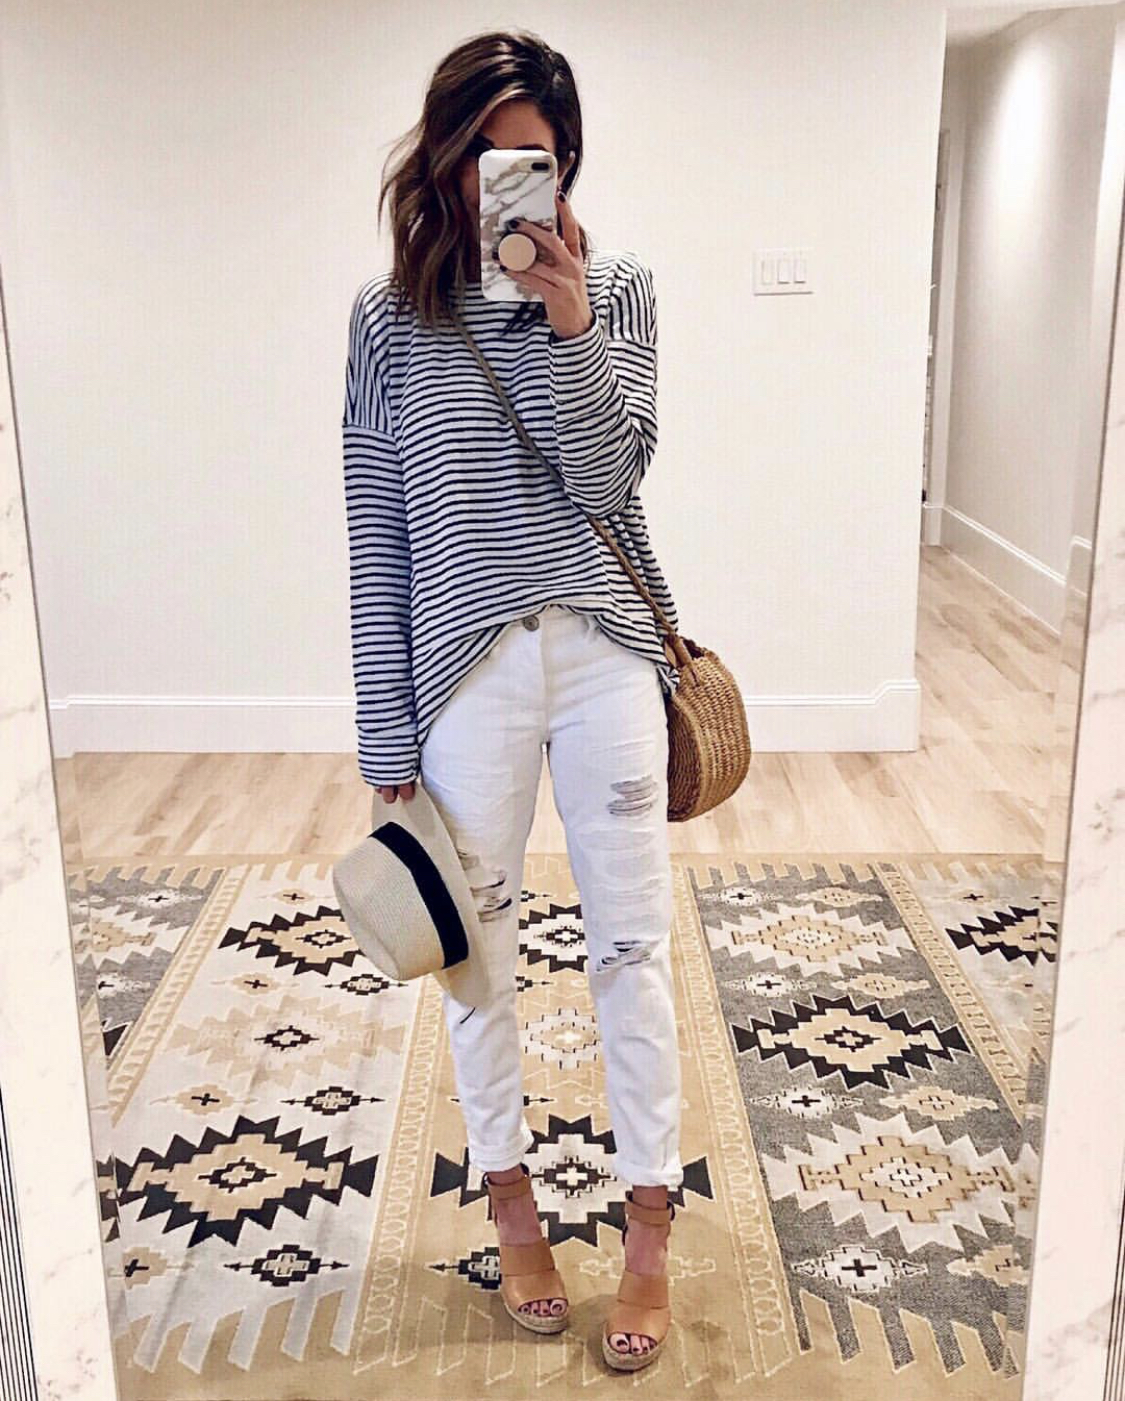 895c4f0cba 15 Ways to Style White Jeans - The Sister Studio